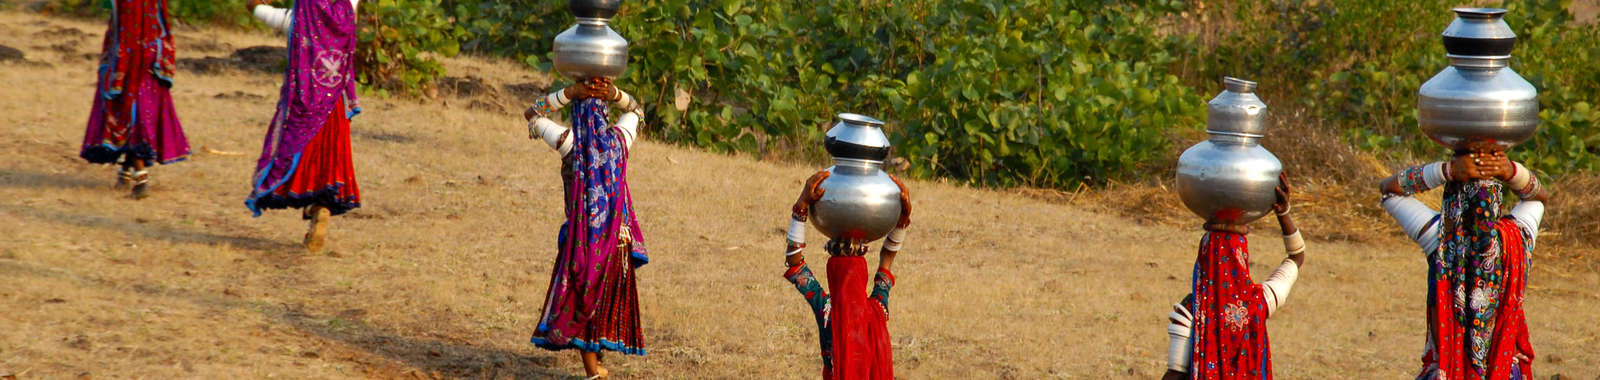 Rajasthan: Off the Beaten Track - A private tailor-made tour of northern India